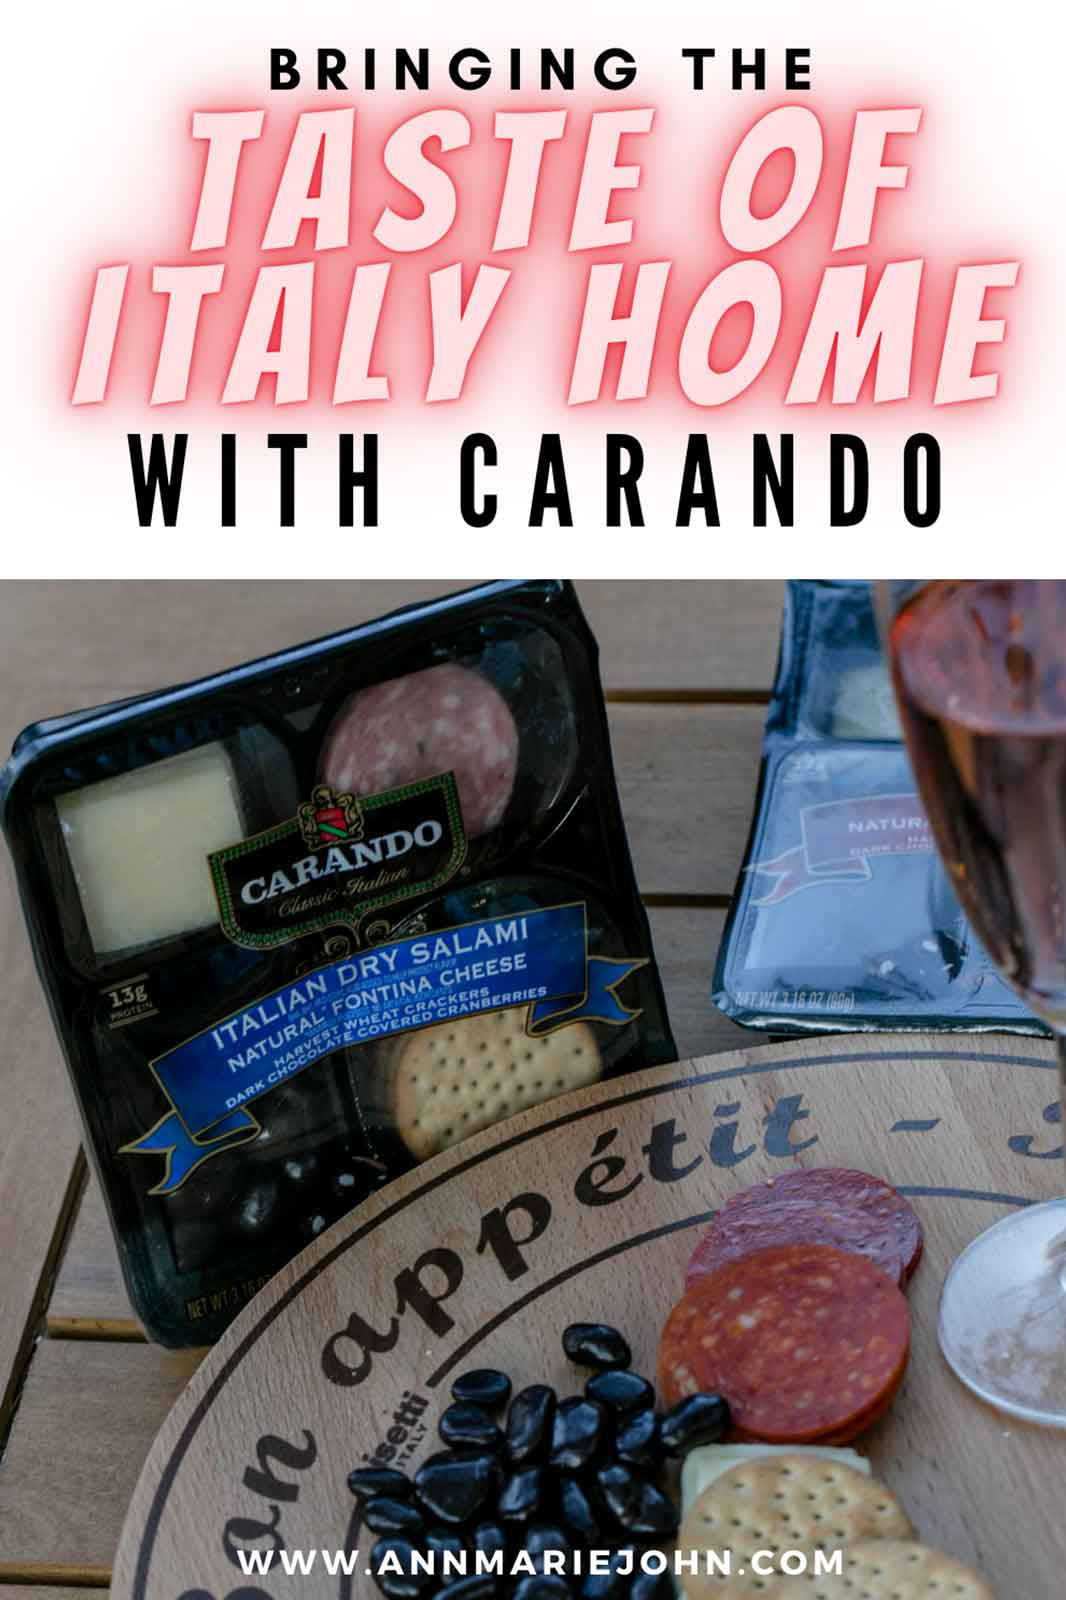 Want to bring the taste of Italy home? Find out how you can do so with Carando.